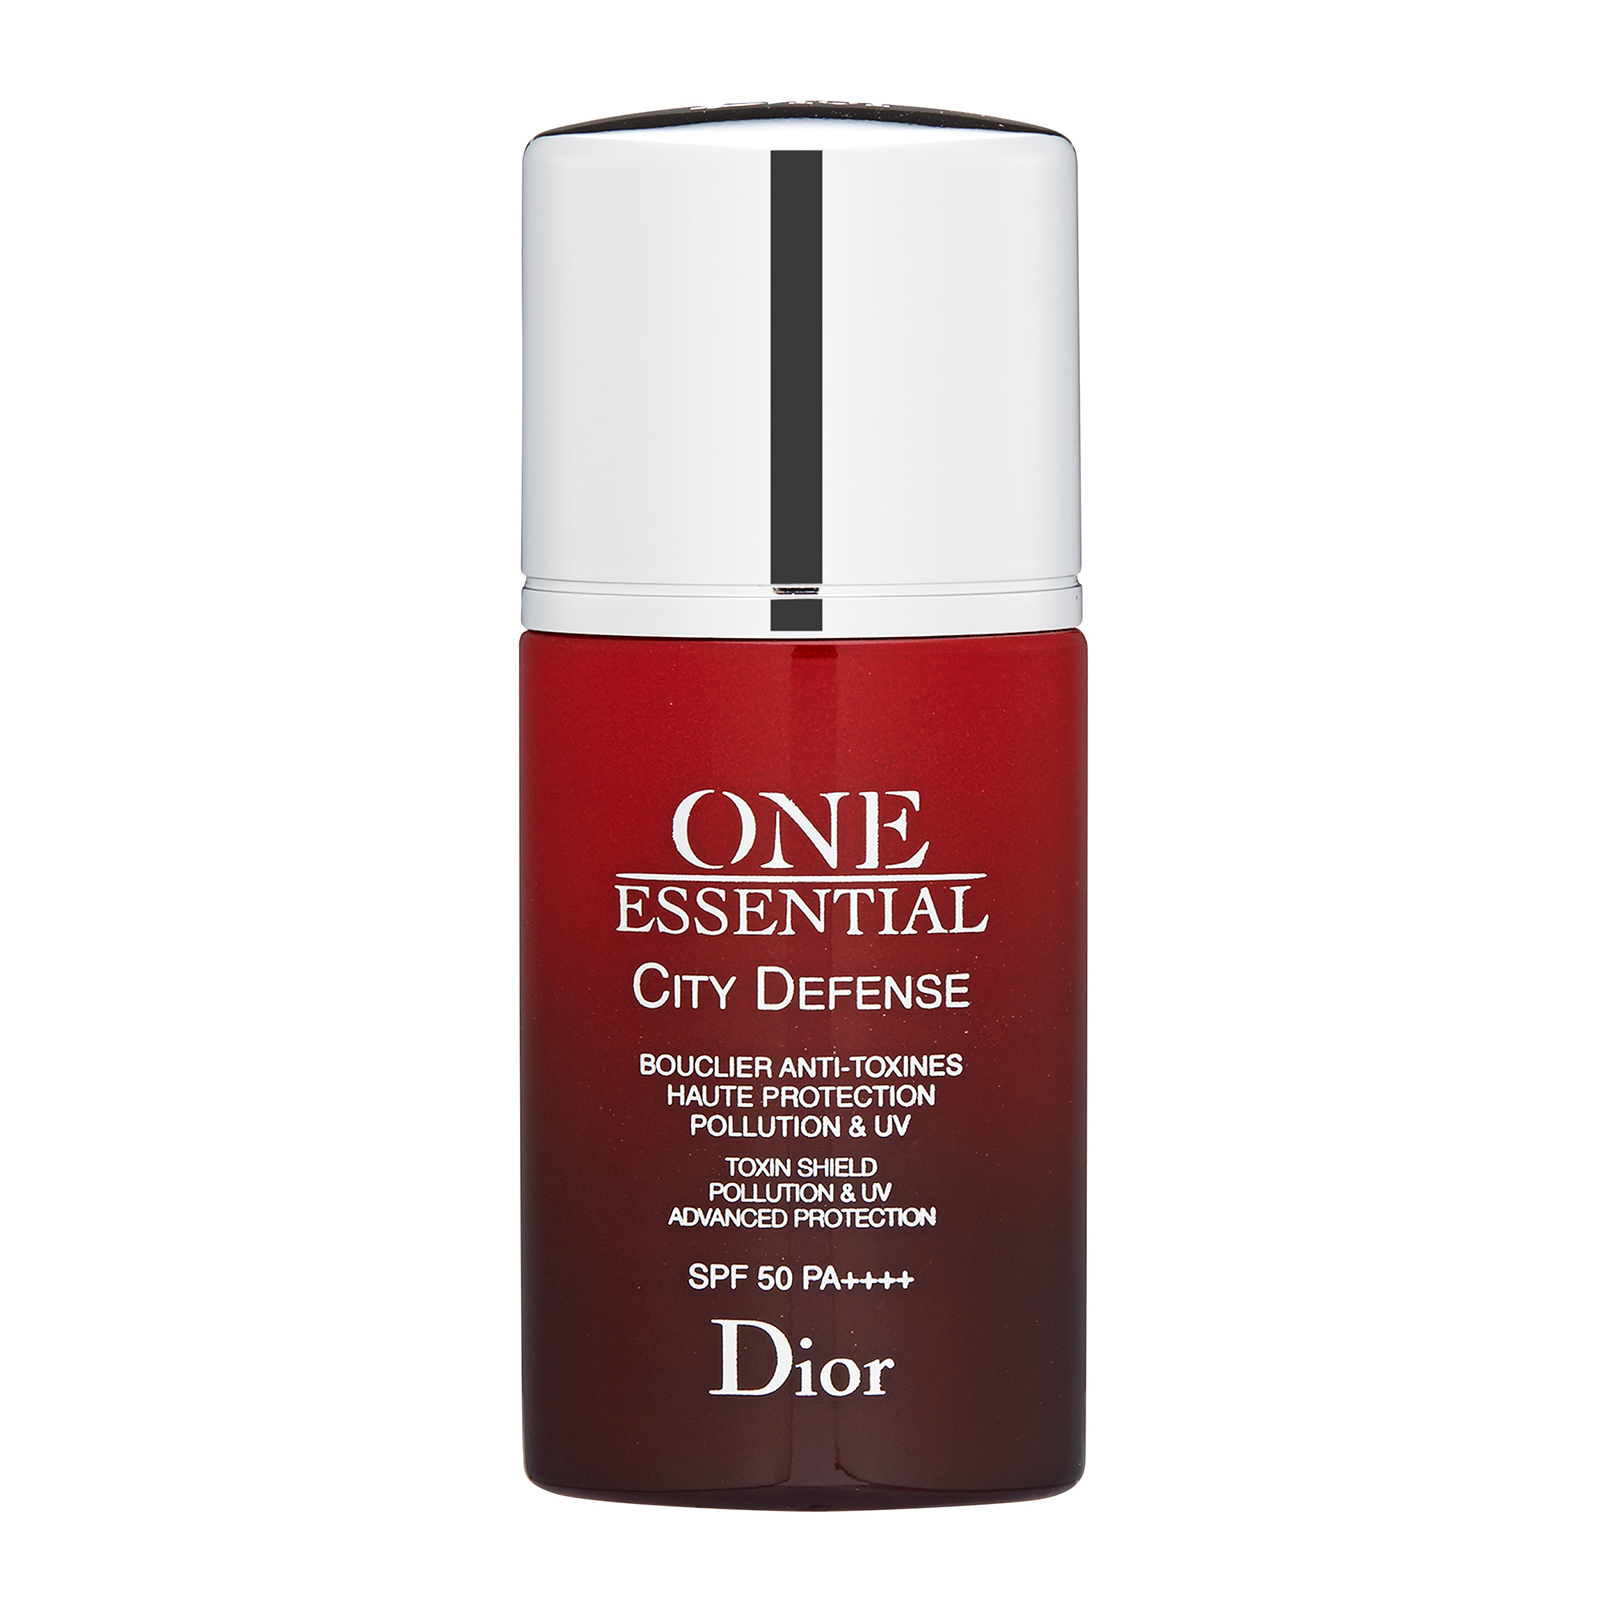 Christian Dior One Essential City Defense Toxin Shield Pollution & UV Advanced Protection SPF50 / PA++++ 1oz, 30ml